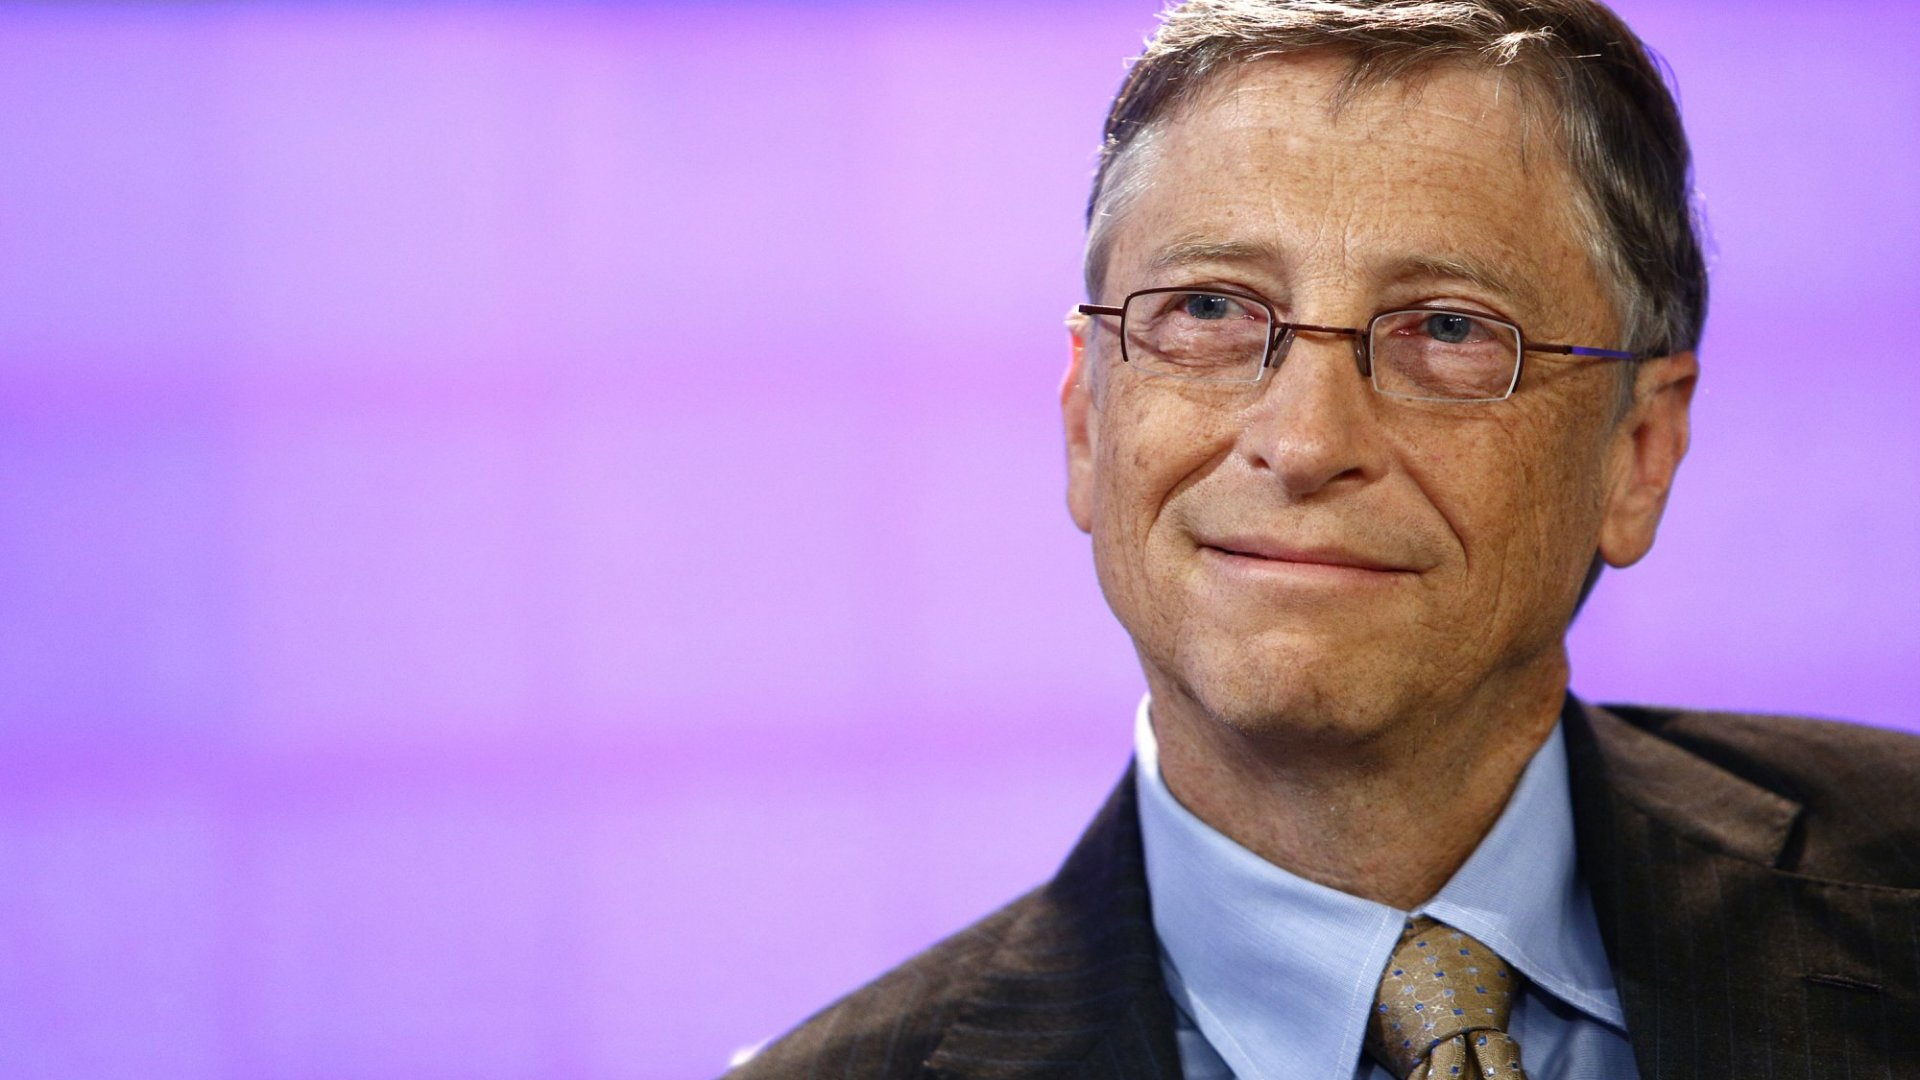 25 Quotes That Show How Bill Gates Became the Richest Person in the World